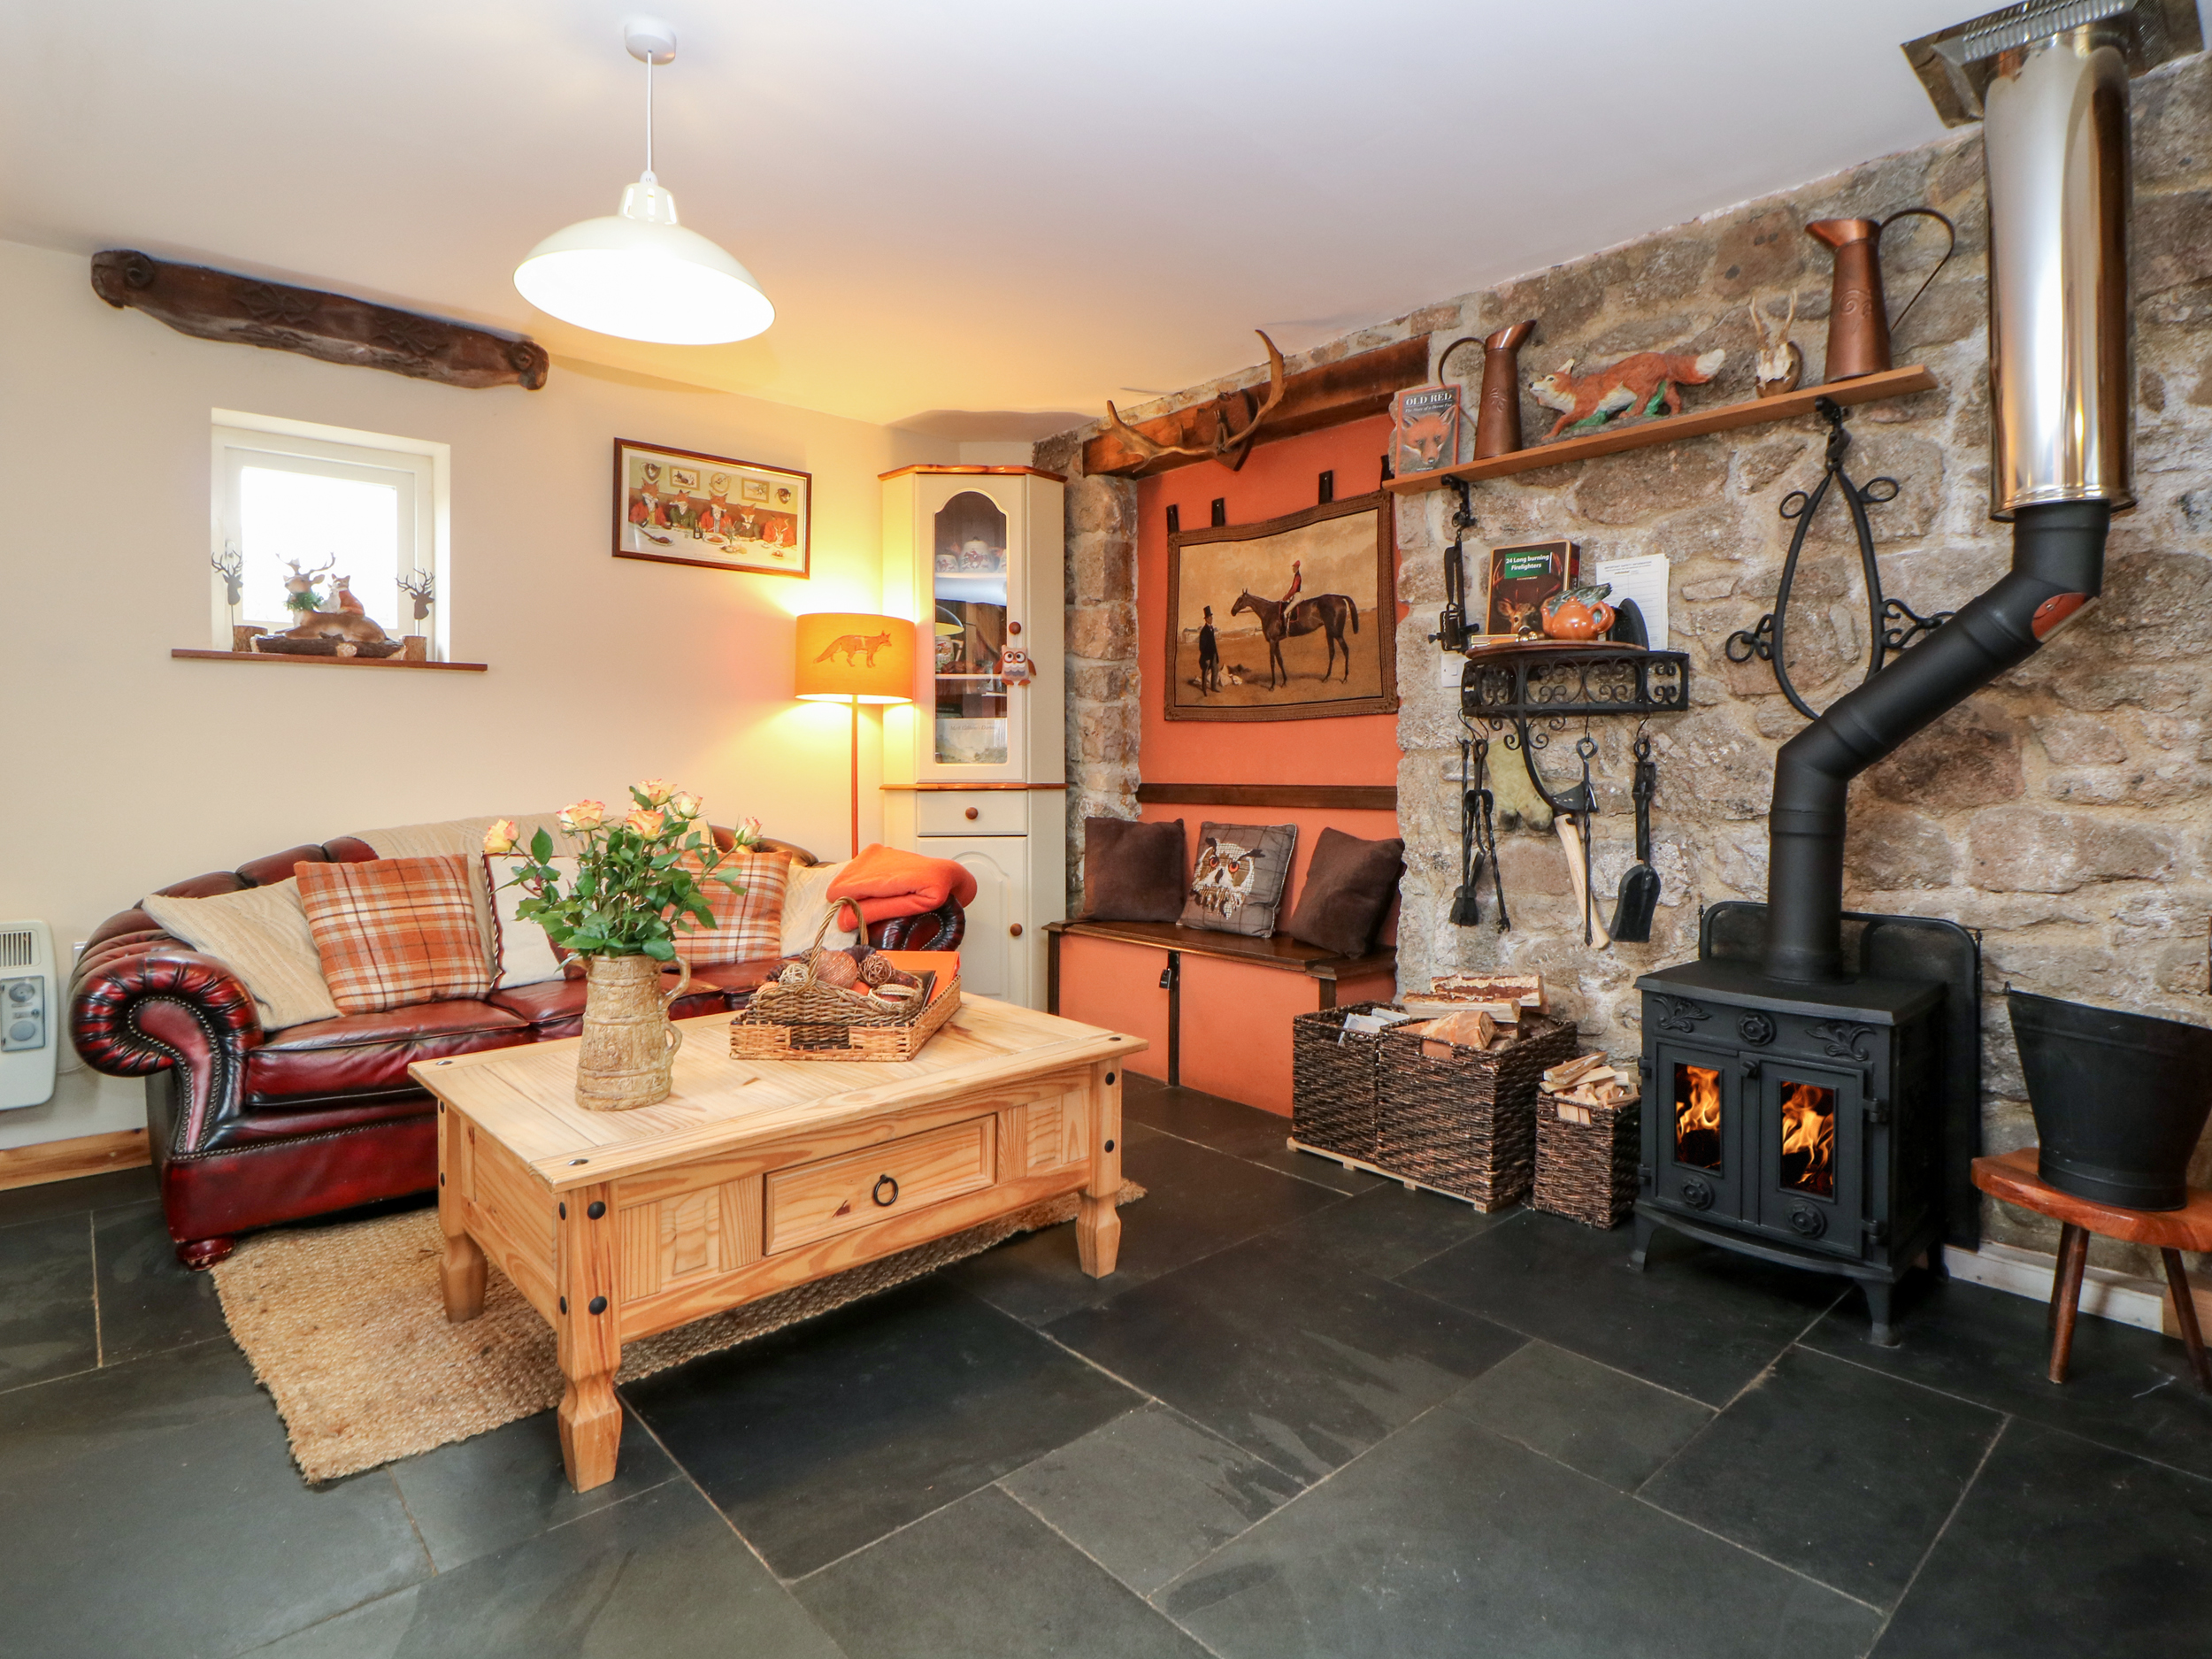 1 bedroom Cottage for rent in Widecombe-in-the-Moor